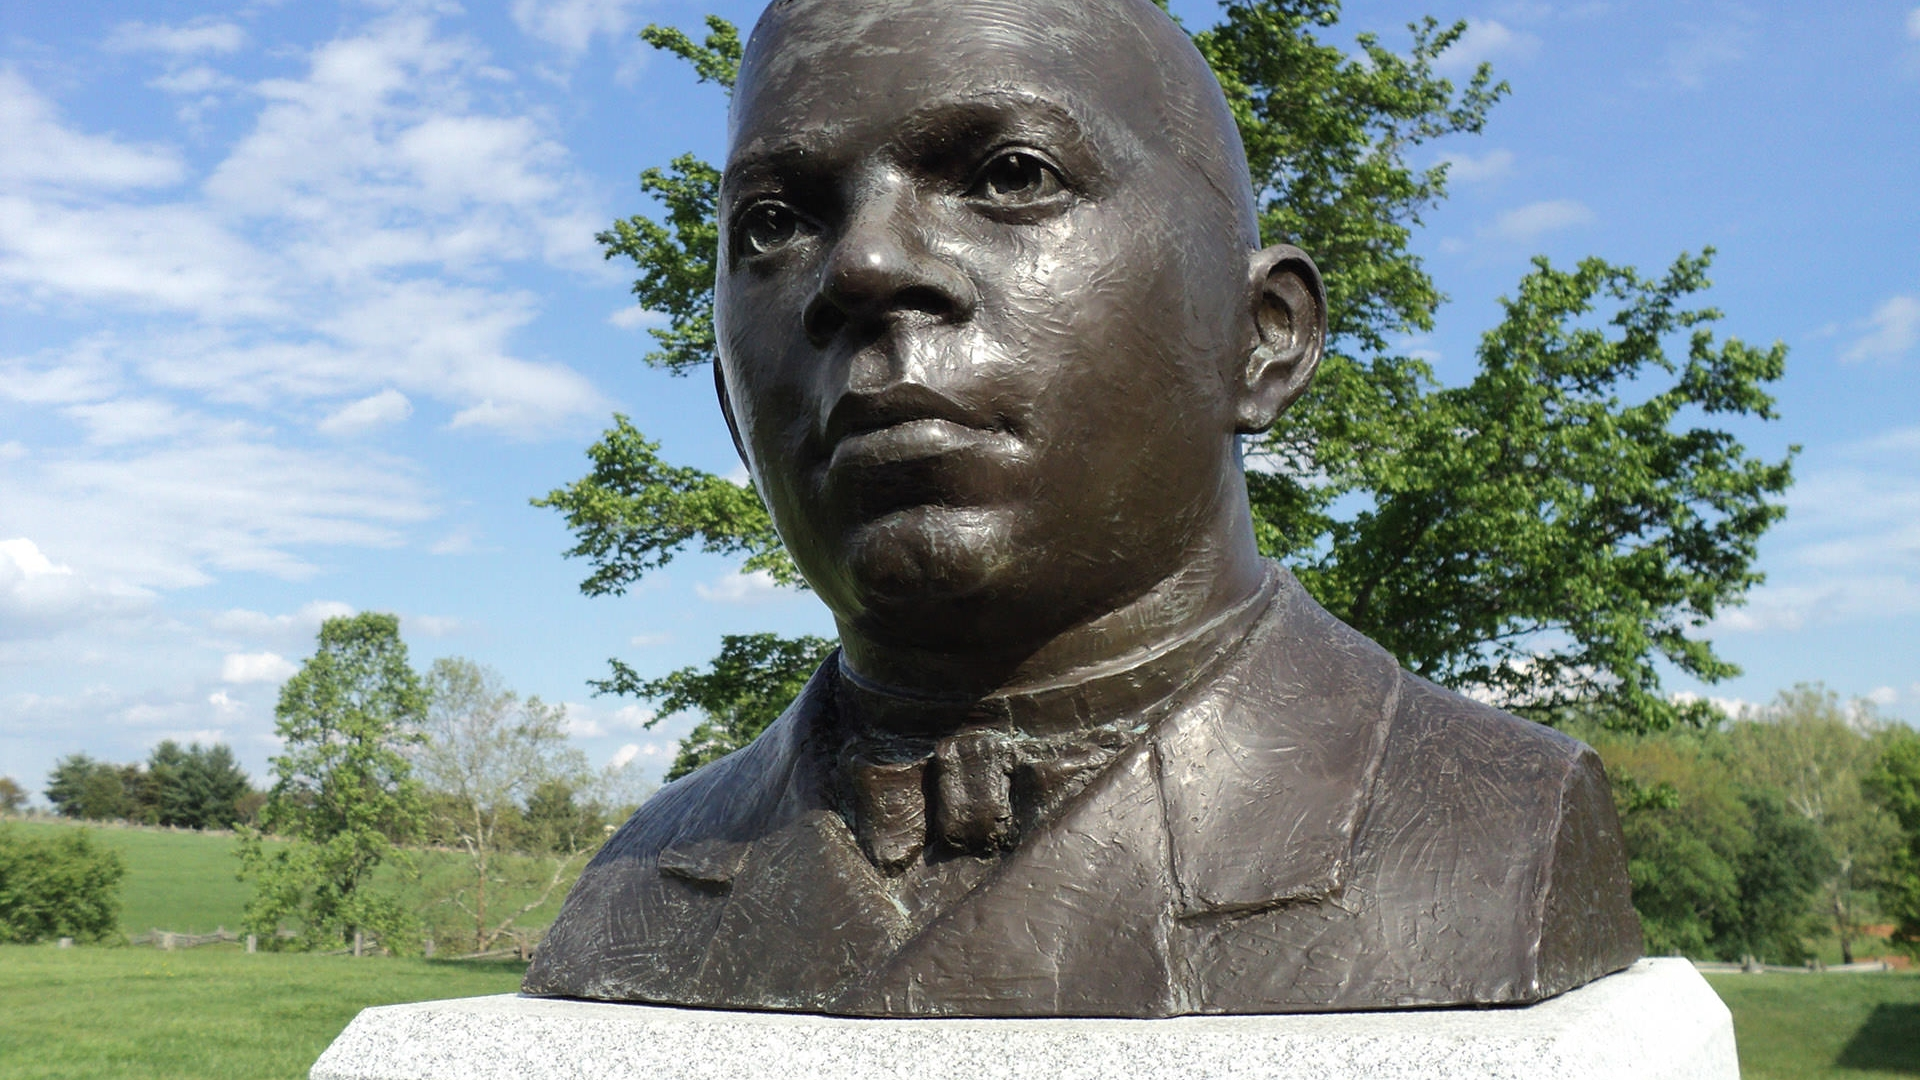 debois and booker t washington Read this essay on booker t washington vs web dubois come browse our large digital warehouse of free sample essays get the knowledge you need in order to pass your classes and more.